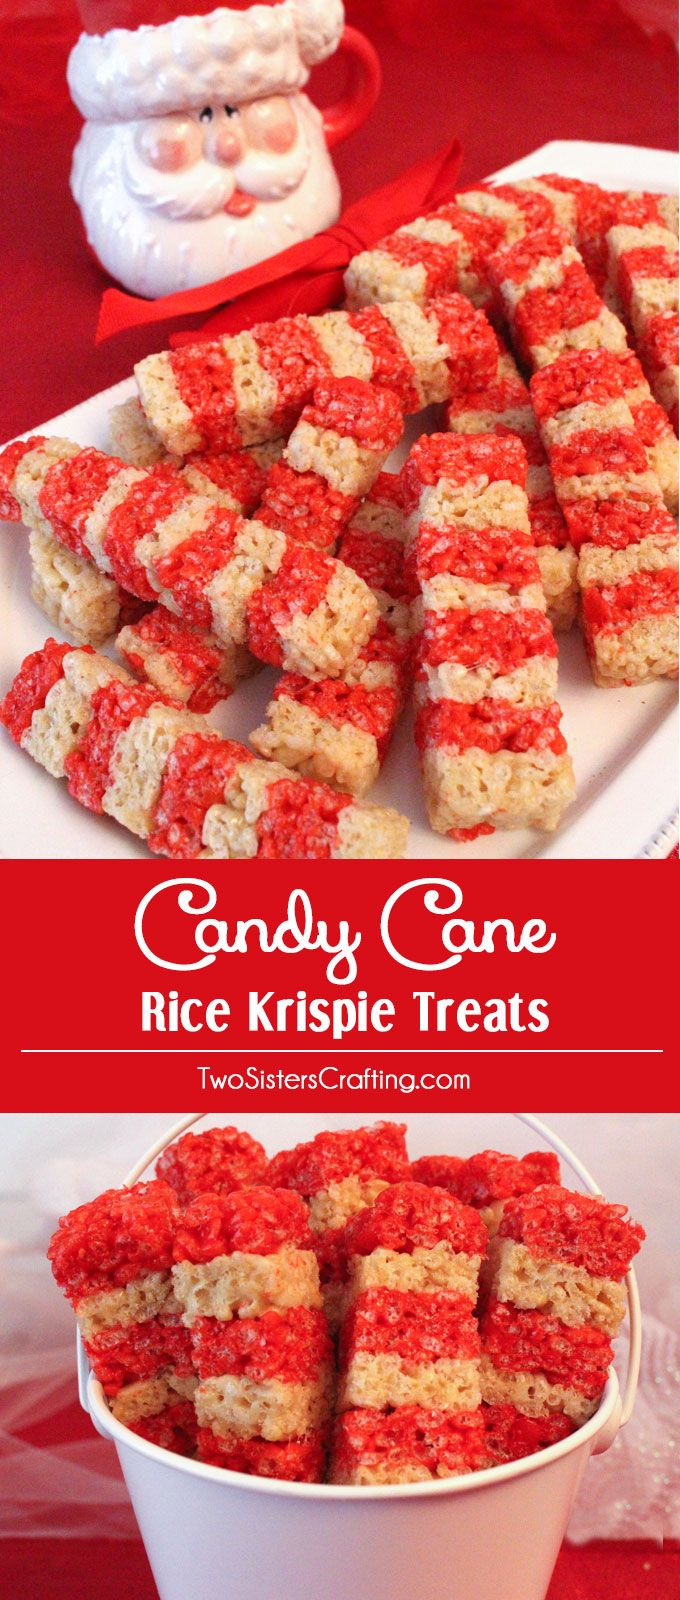 Christmas Colored Rice Krispie Treats With Candy Cane Pinterest Desserts